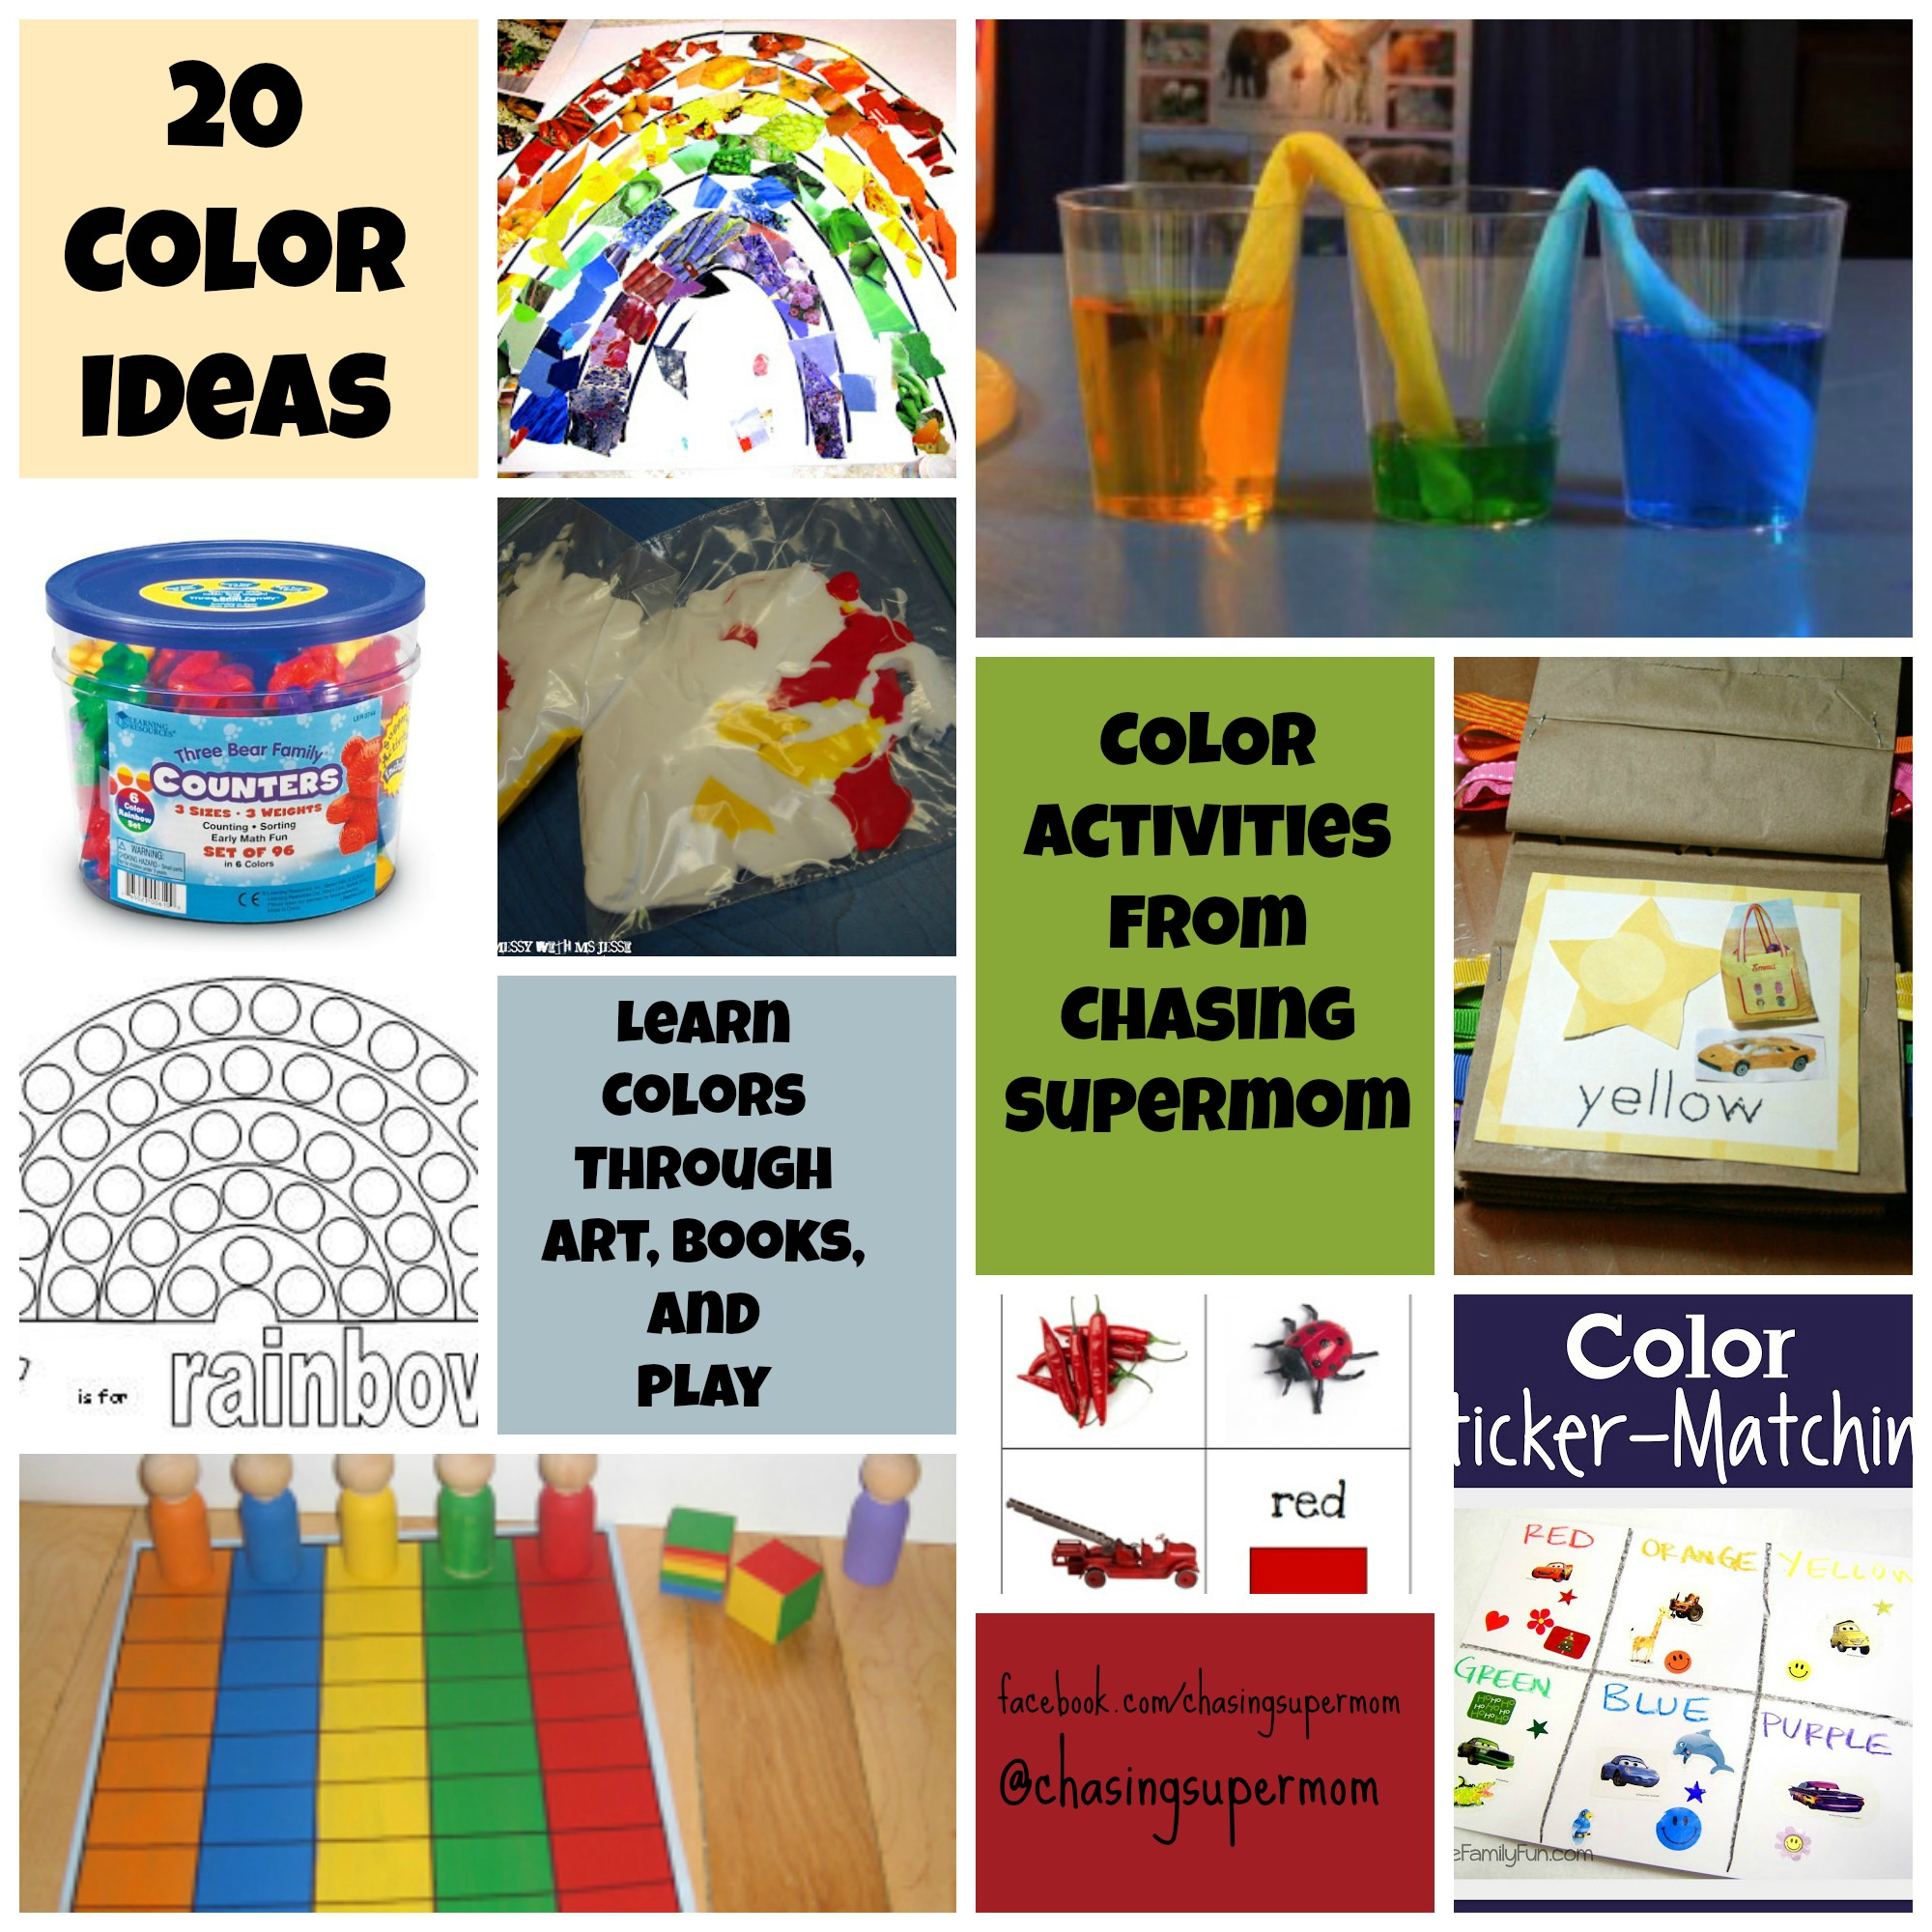 Color Activities for Preschoolers | Chasing Supermom